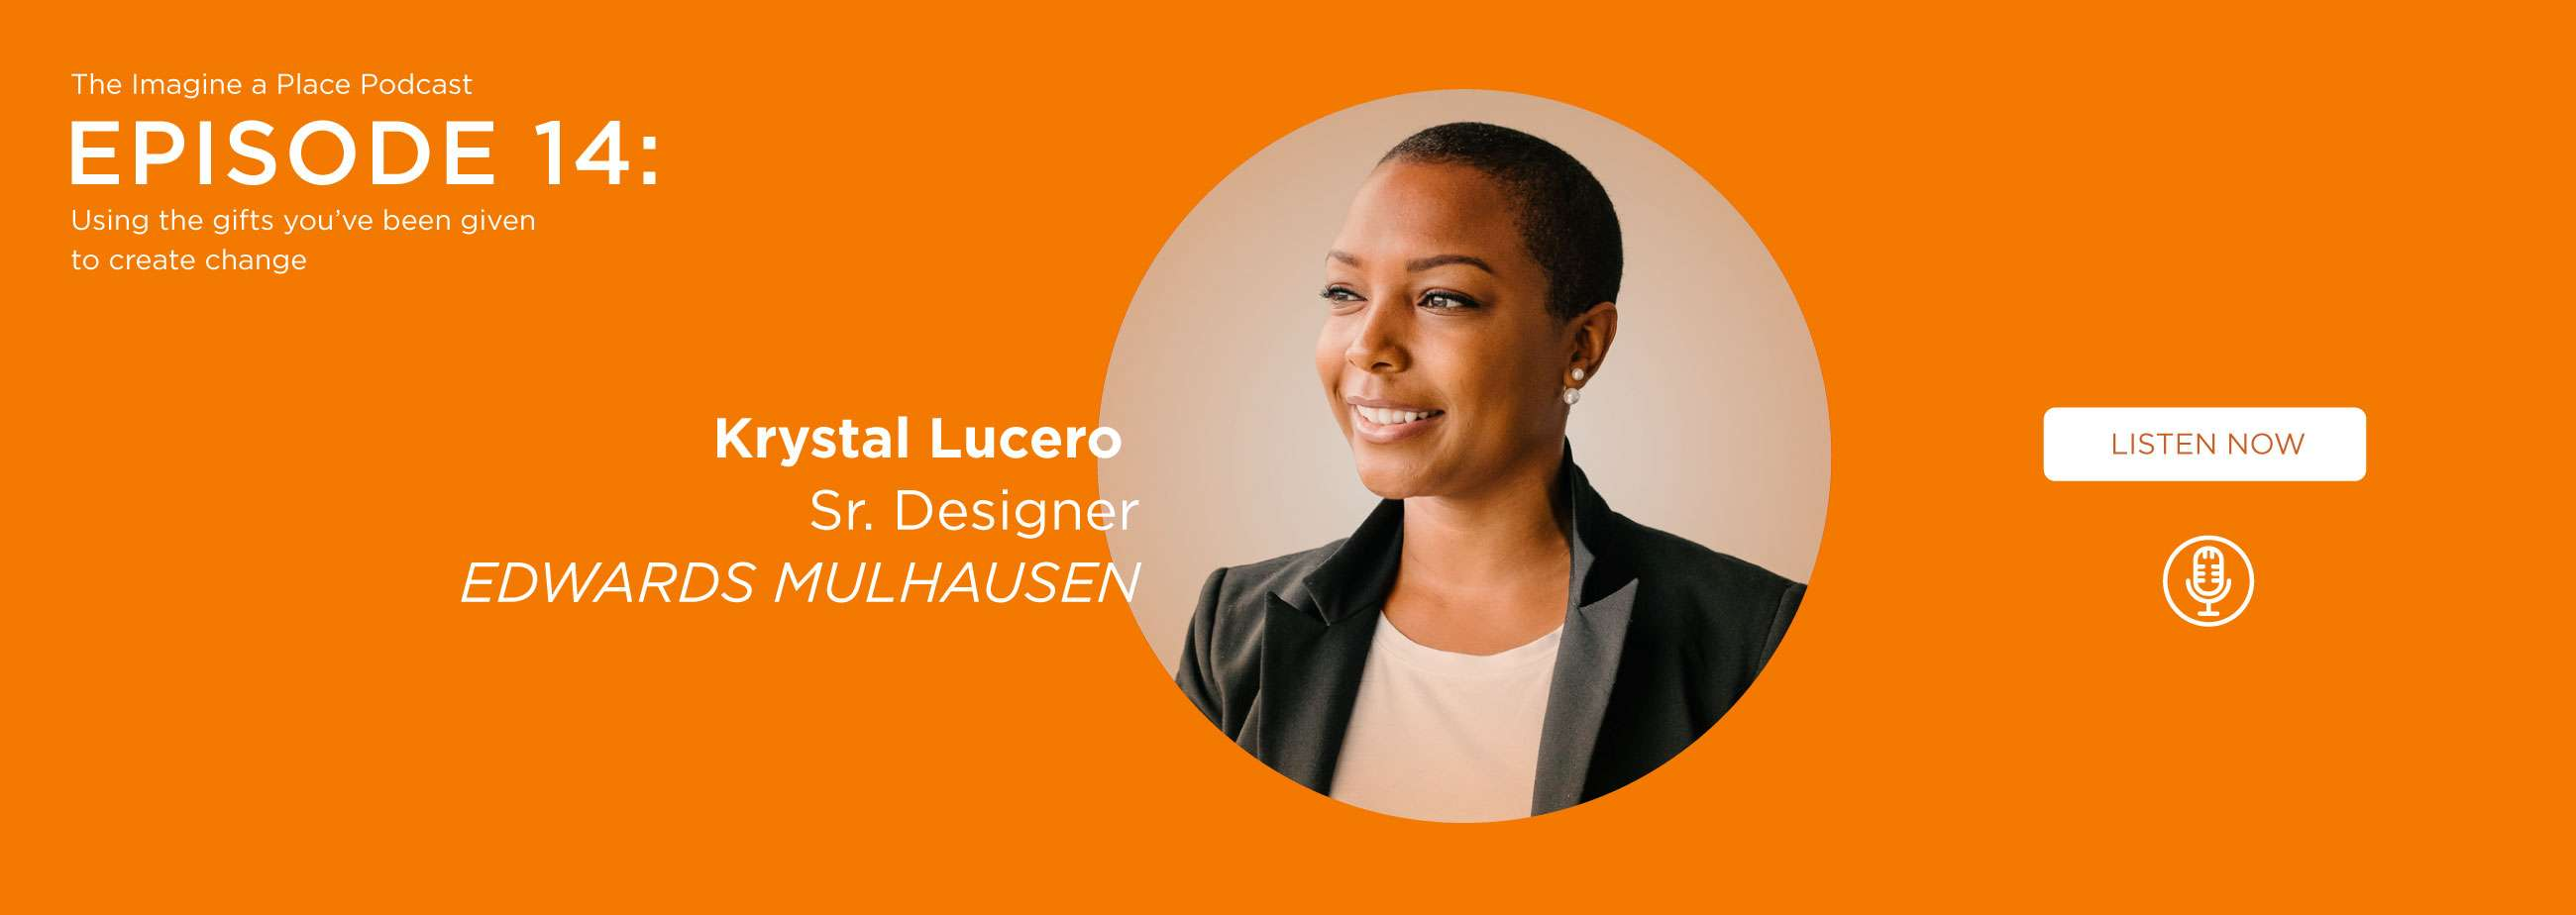 Krystal Lucero (Edwards Mulhausen): Using the gifts you've been given to create change. - Ep. 14